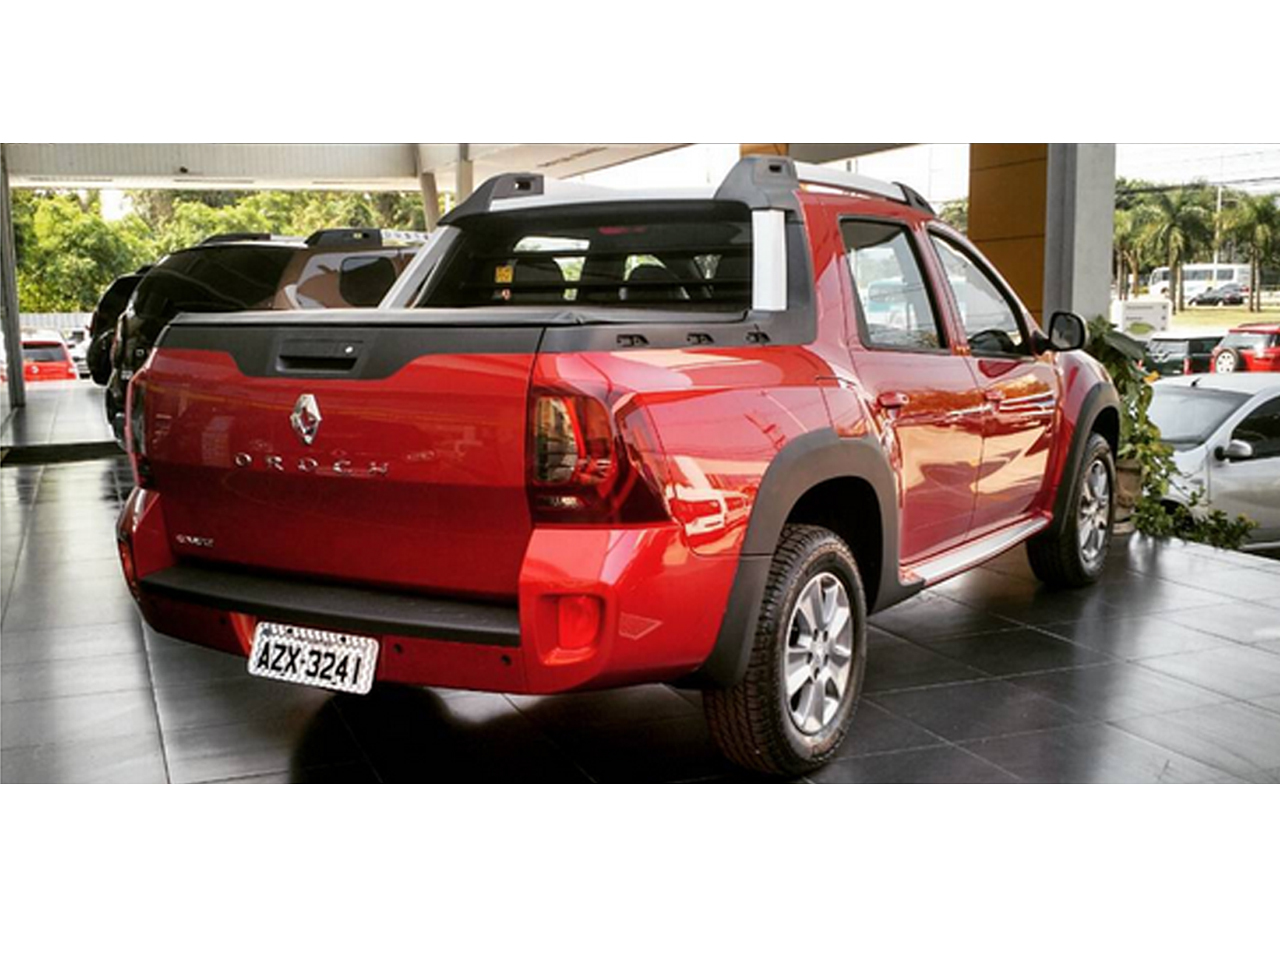 renault duster oroch le pick up duster bient t en vente photo 8 l 39 argus. Black Bedroom Furniture Sets. Home Design Ideas